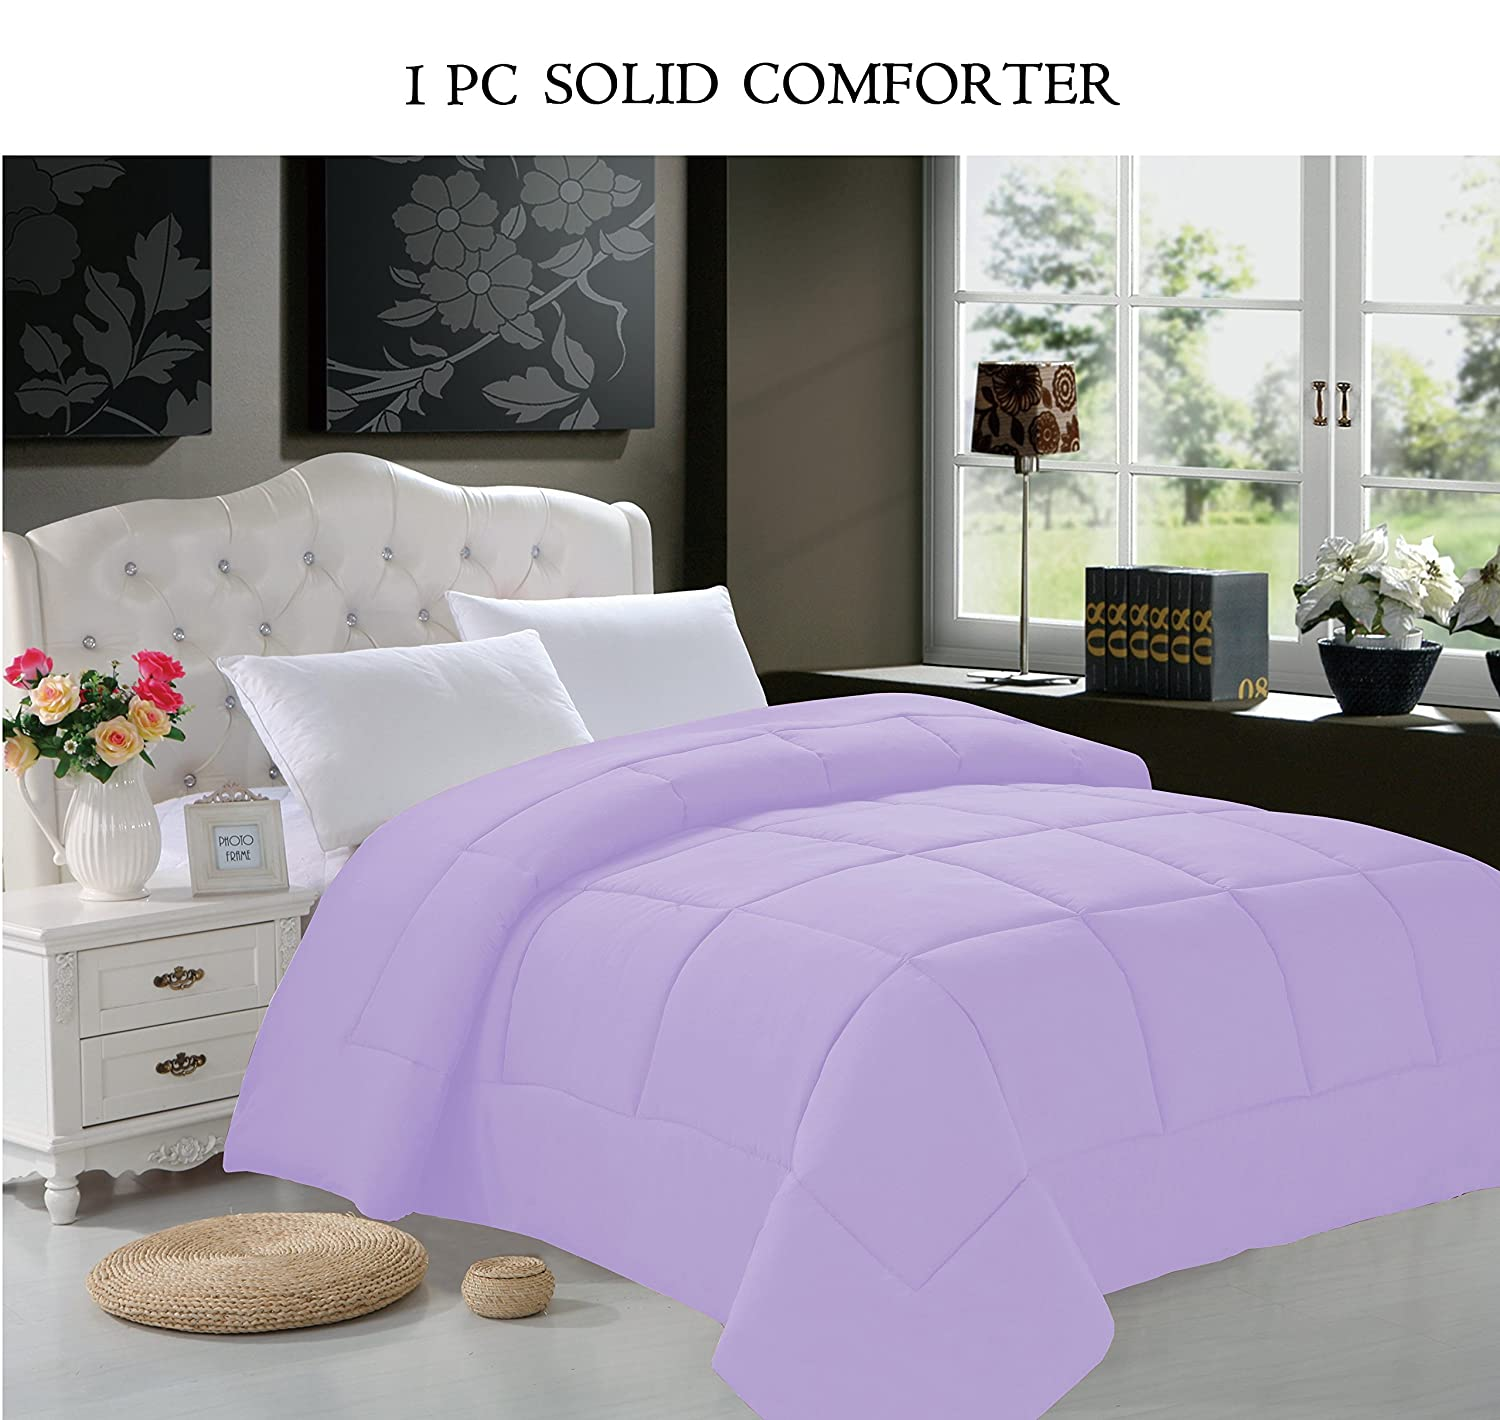 pdx bath comforter hector bed august set wayfair piece lilac reviews grove